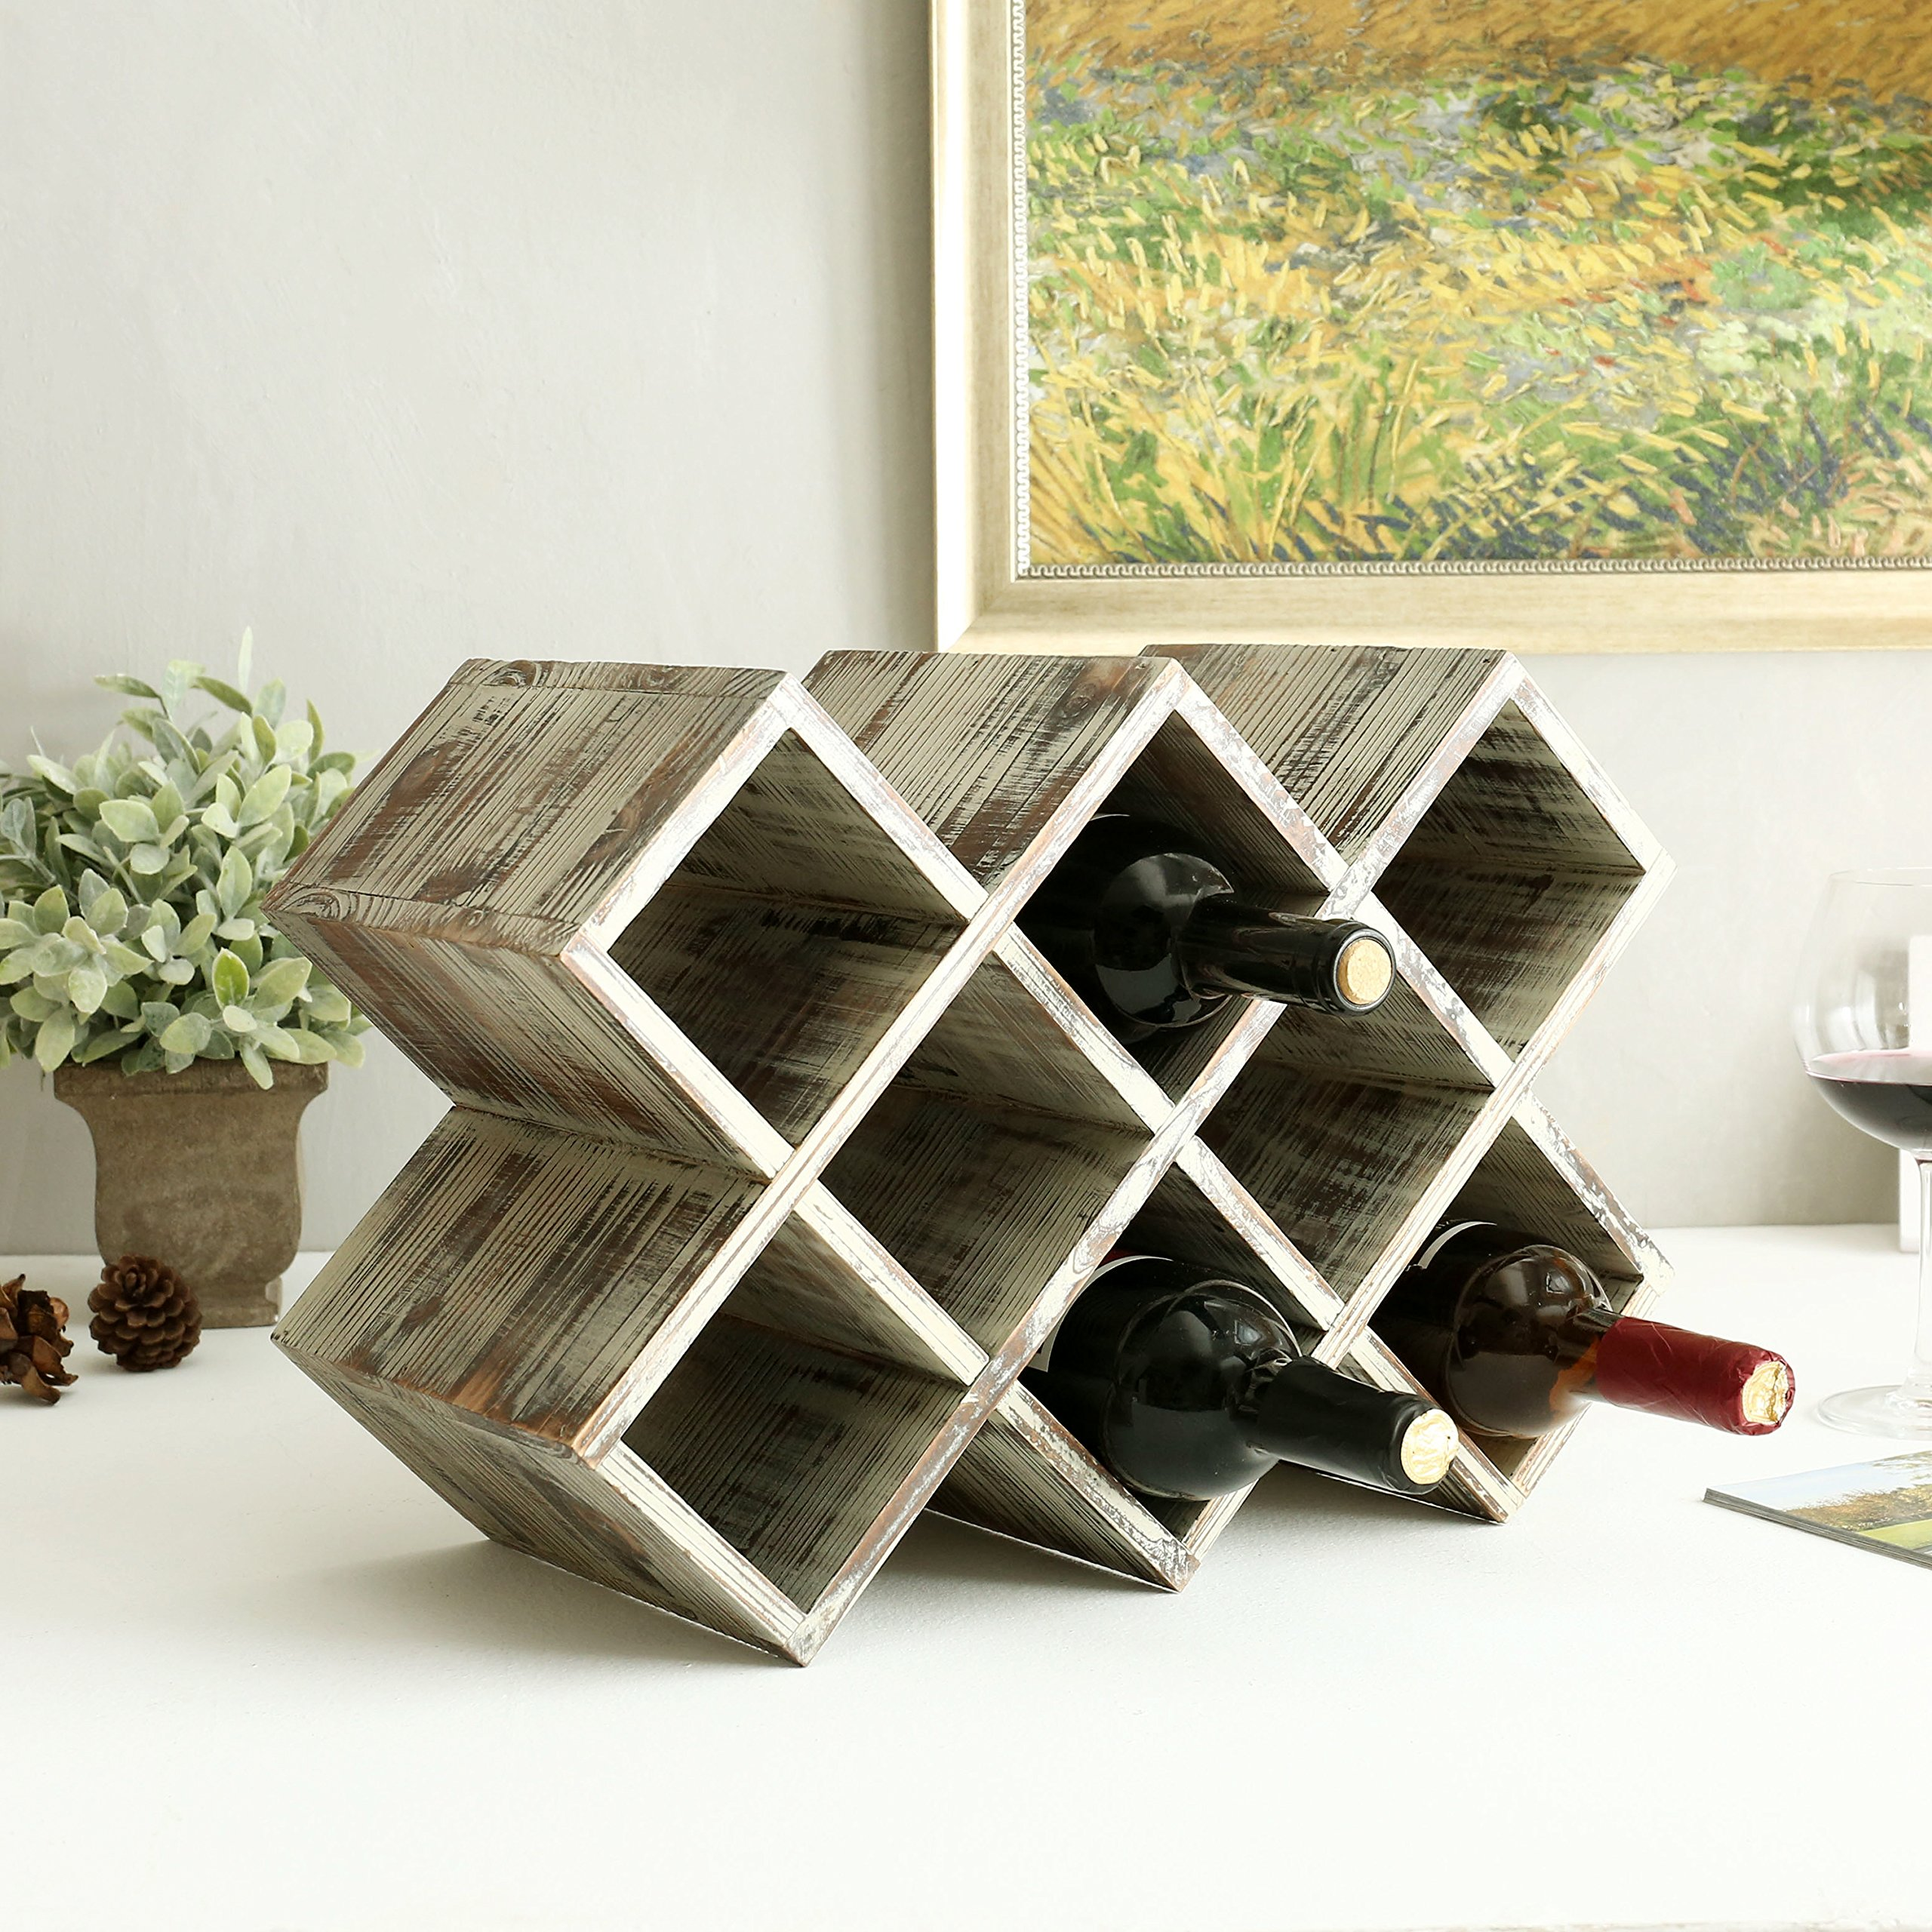 Countertop Rustic Torched Wood Wine Rack, Geometric Design 8-Bottle Storage Organizer by MyGift (Image #2)